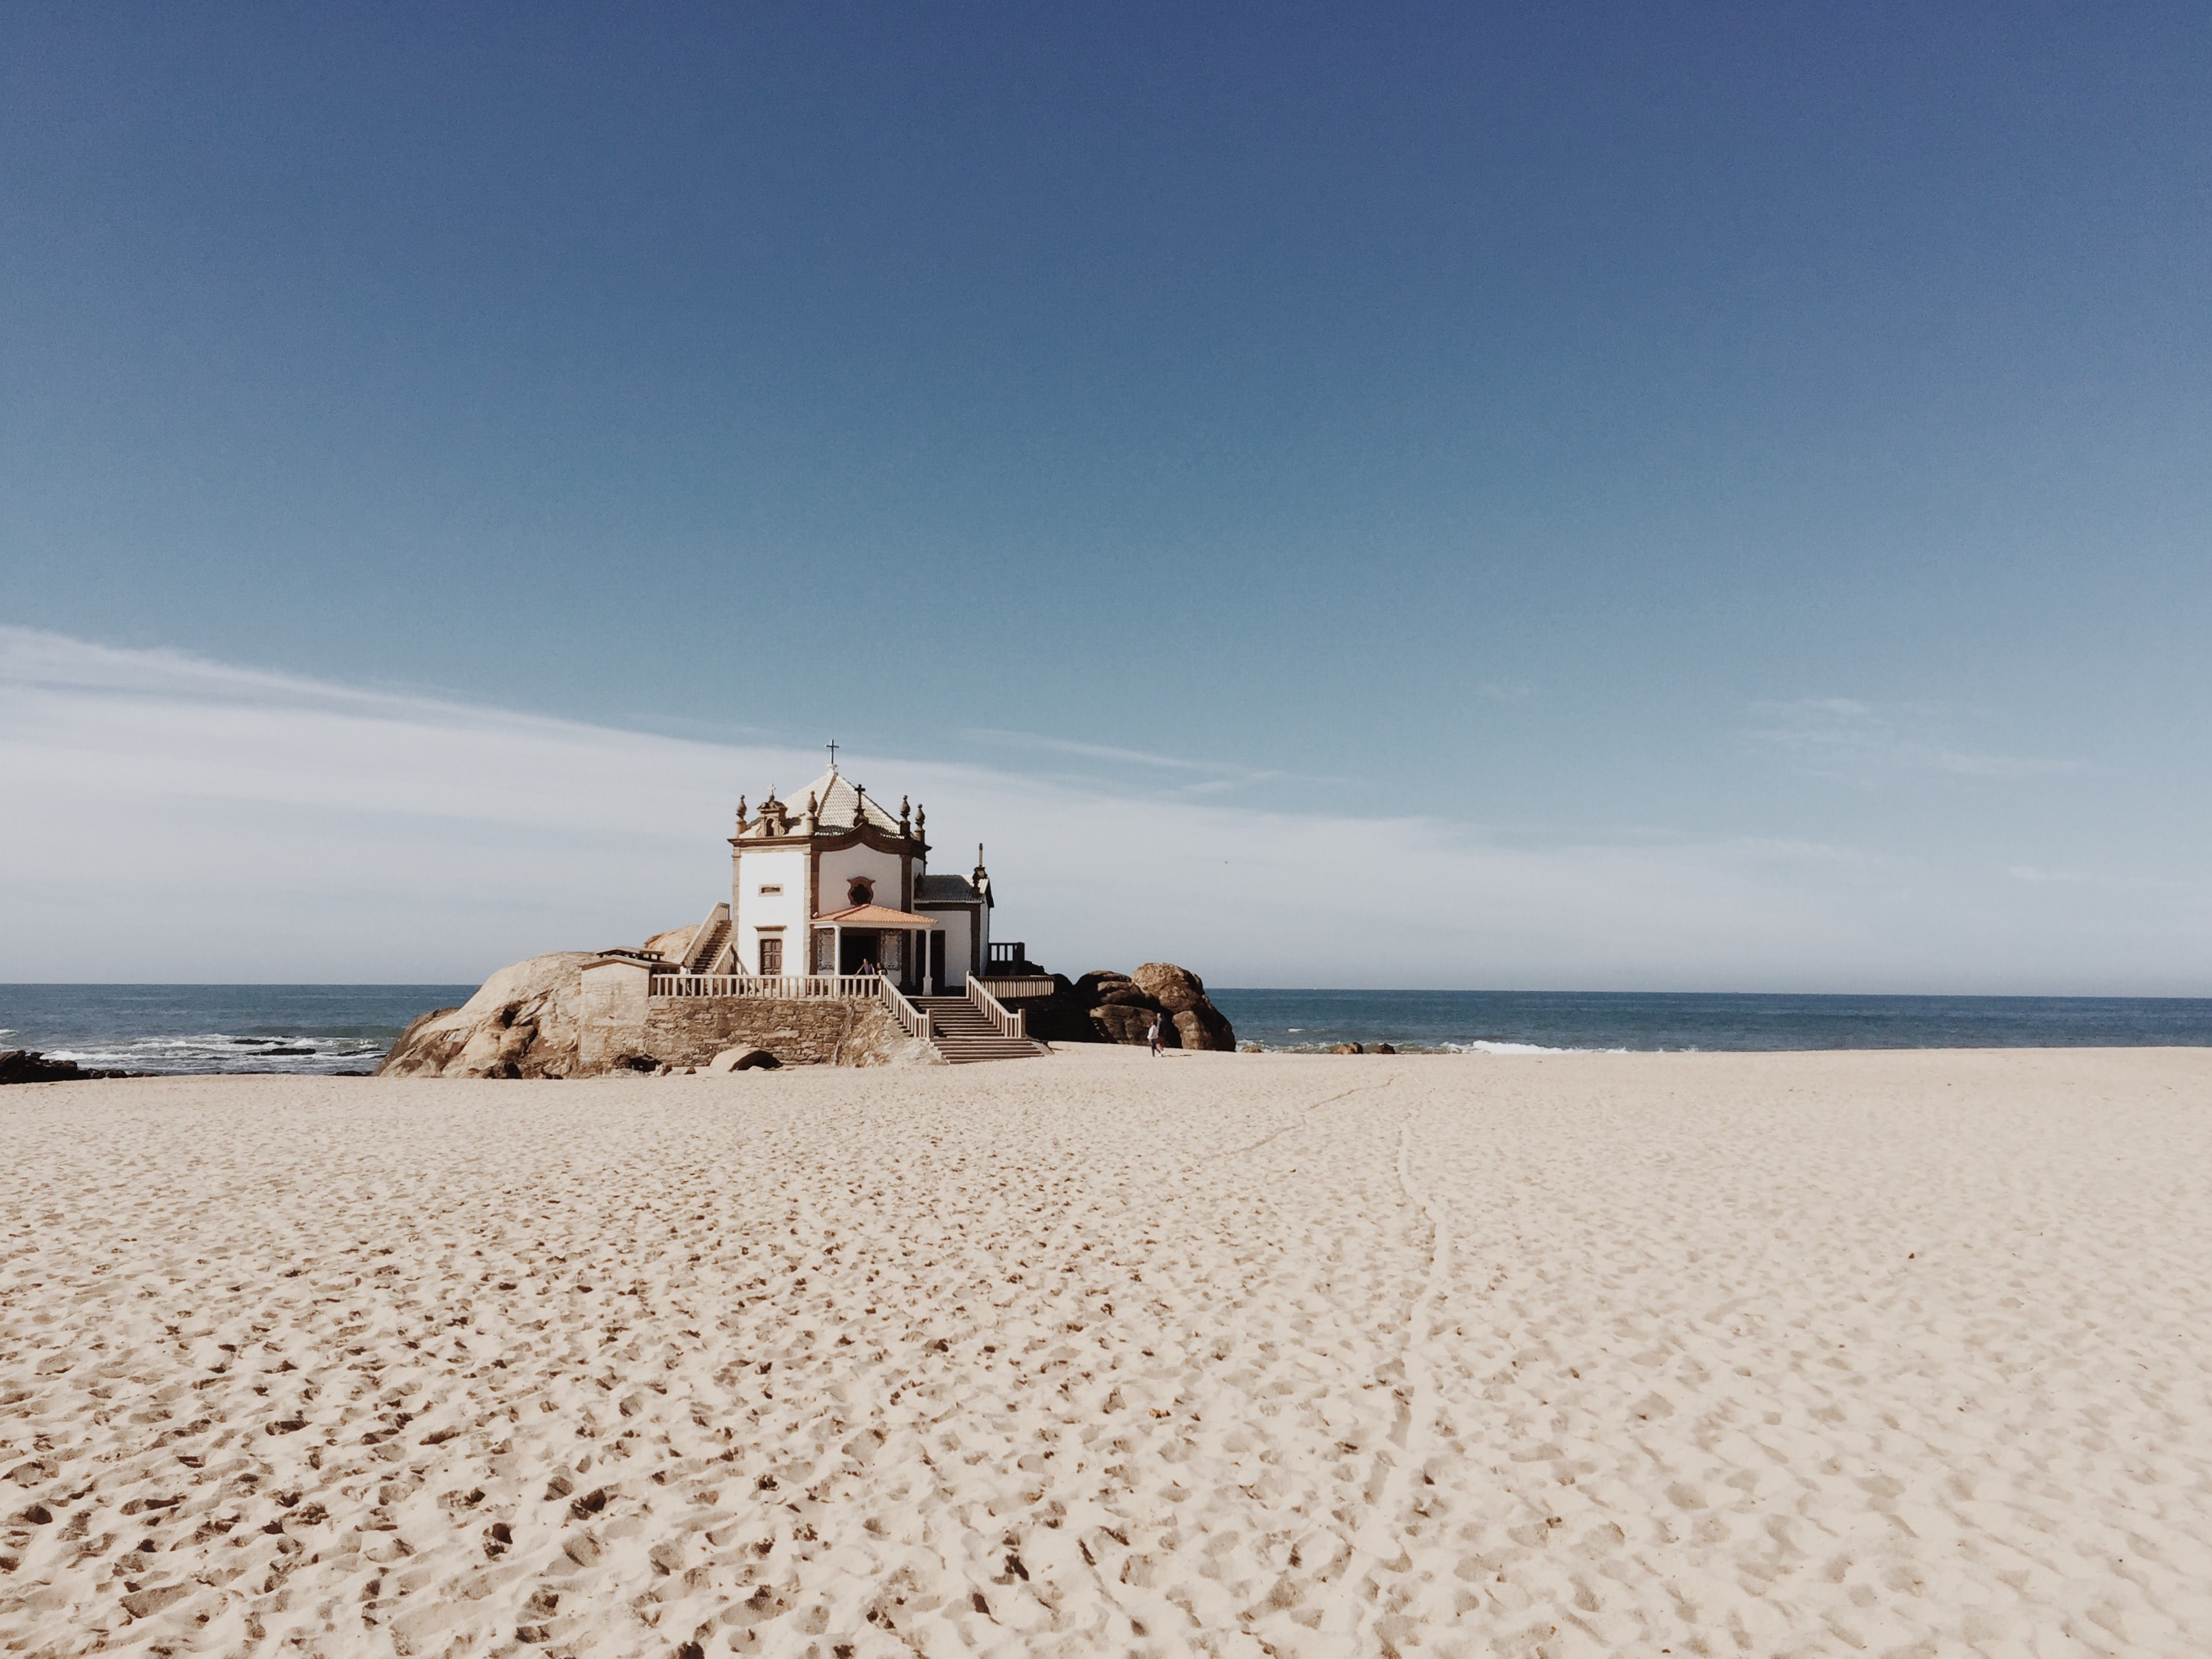 white concrete castle on beach